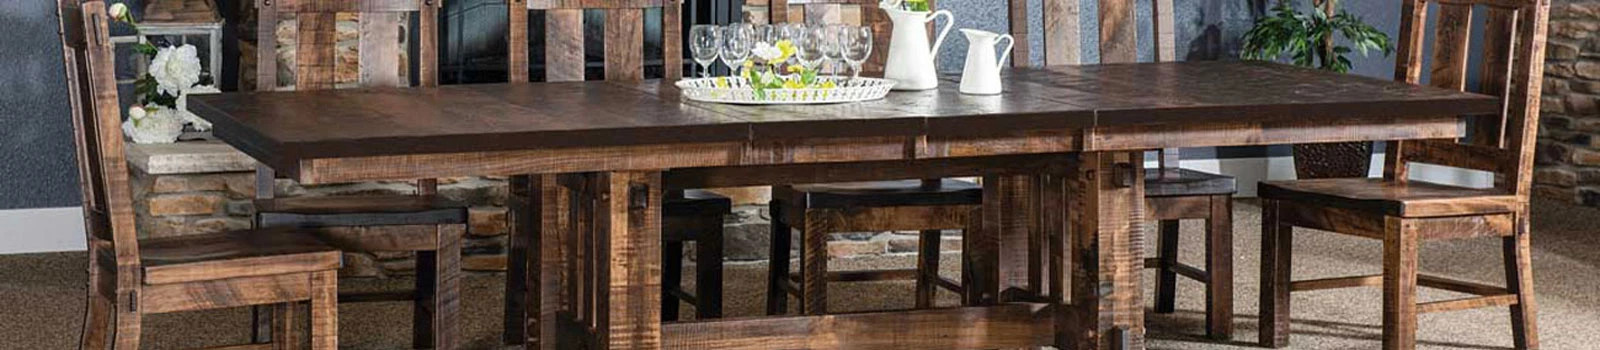 Outstanding amish dining furniture